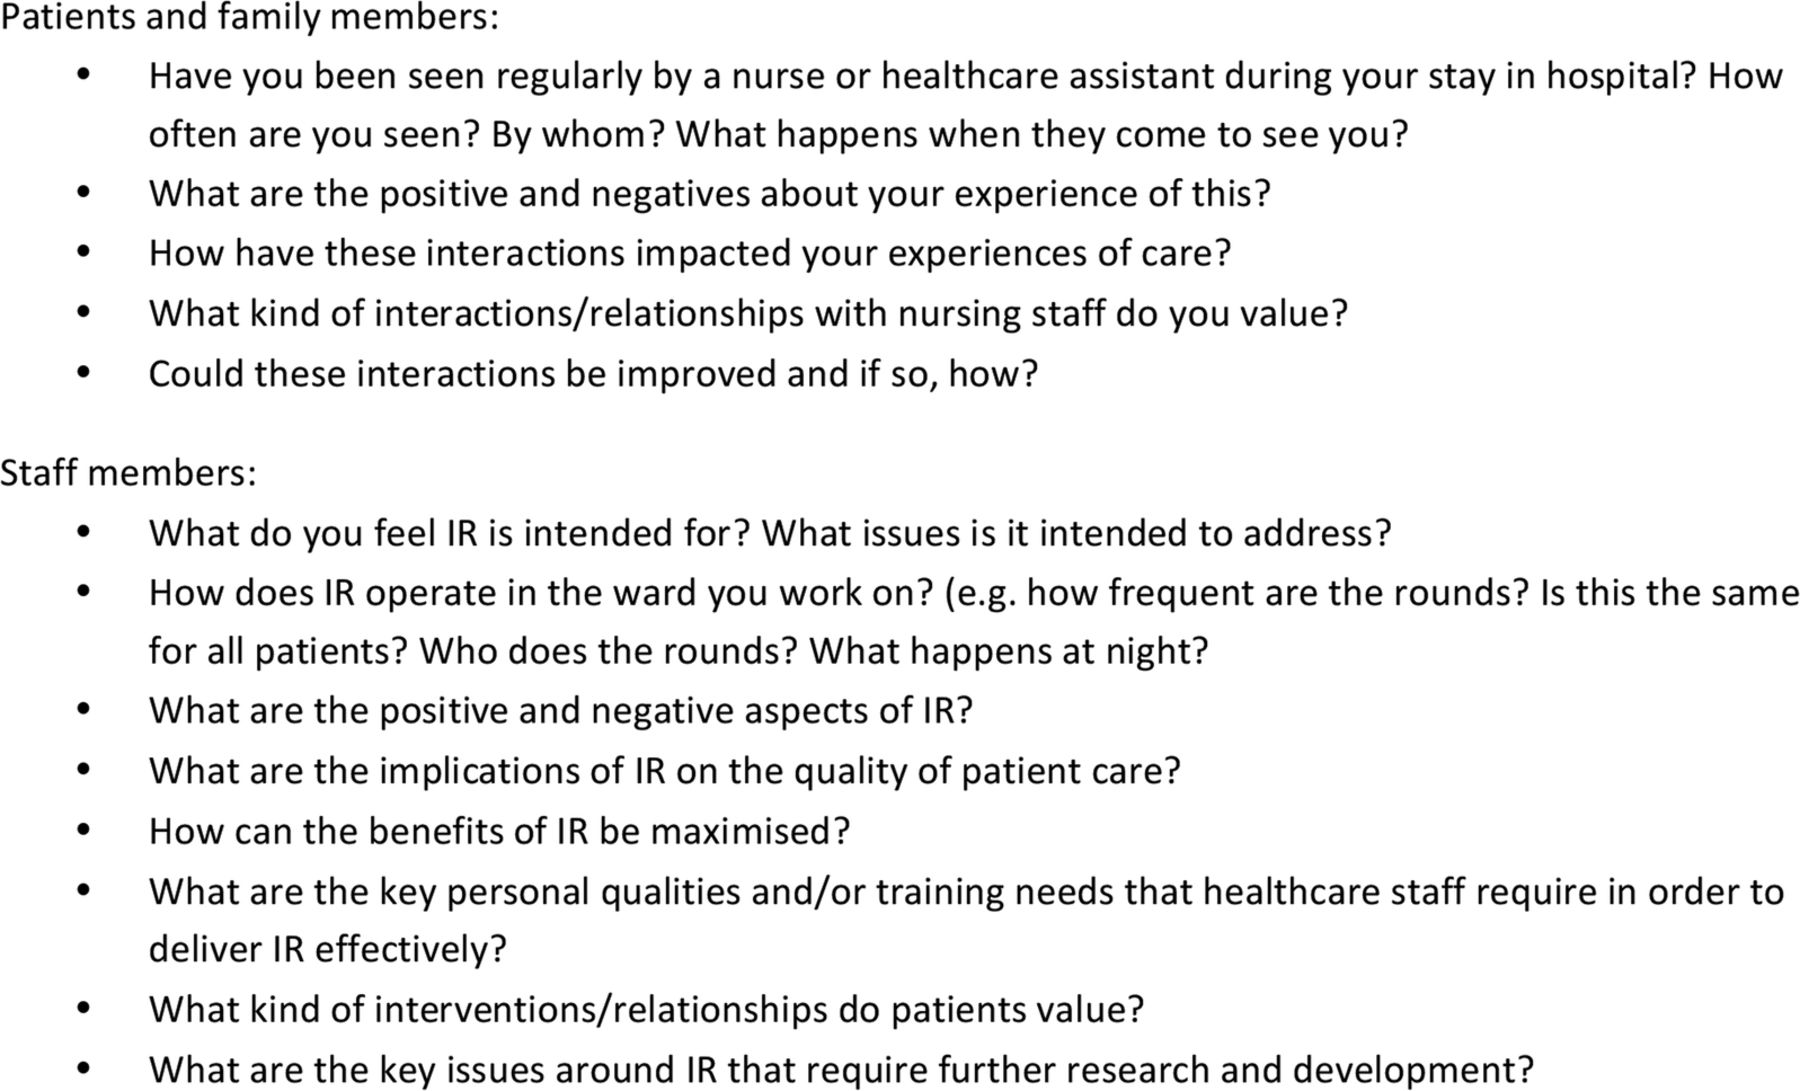 examples of questionaires